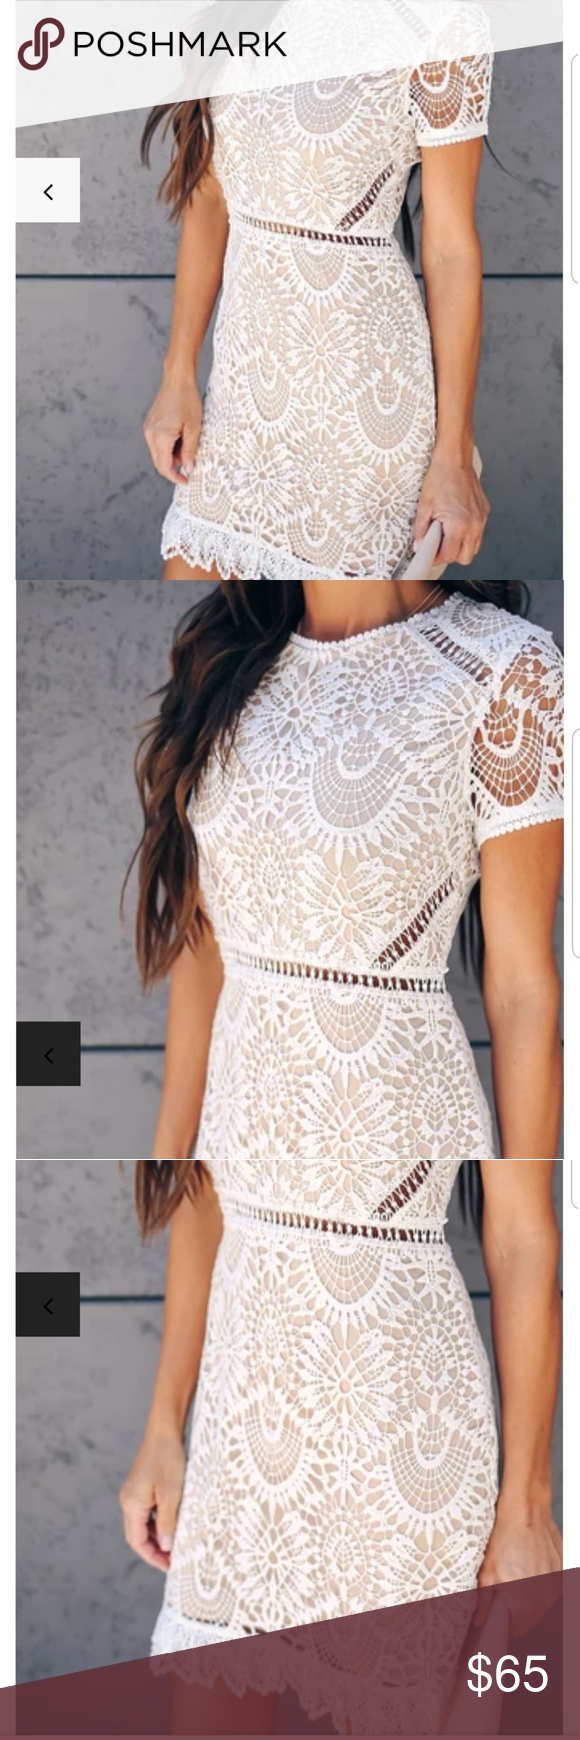 Vici White Lace Dress White Lace With A Tan Slip Underneath Only Worn Once Vici Dresses Midi Lace White Dress Lace Dress Vici Dress [ 1740 x 580 Pixel ]